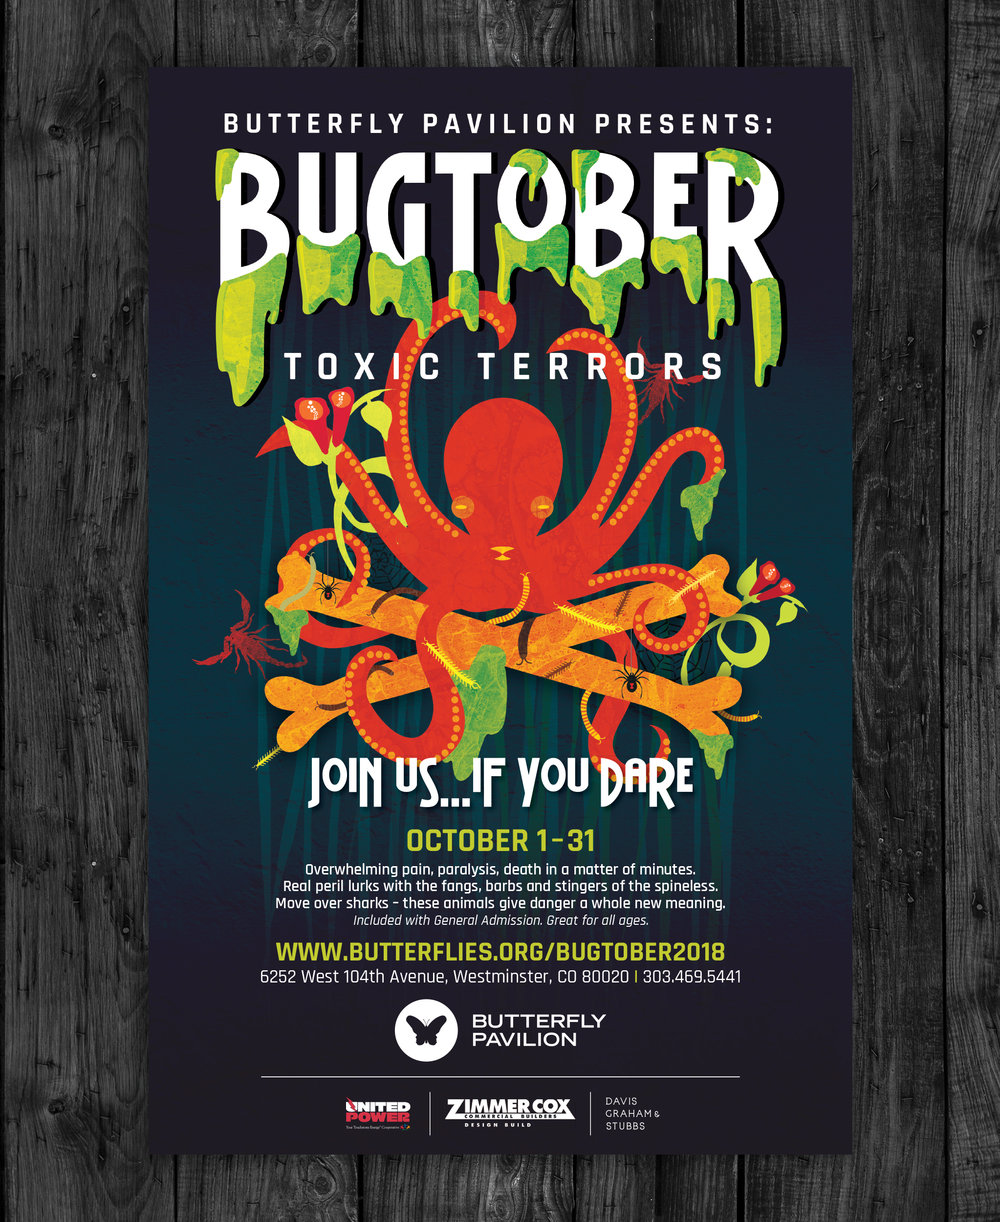 Client:  Butterfly Pavilion (Denver)   Objective:  Build a slimy, spooky brand for the 2018 Bugtober event. Final assets were used across print and digital platforms as well as for on-site exhibit elements.